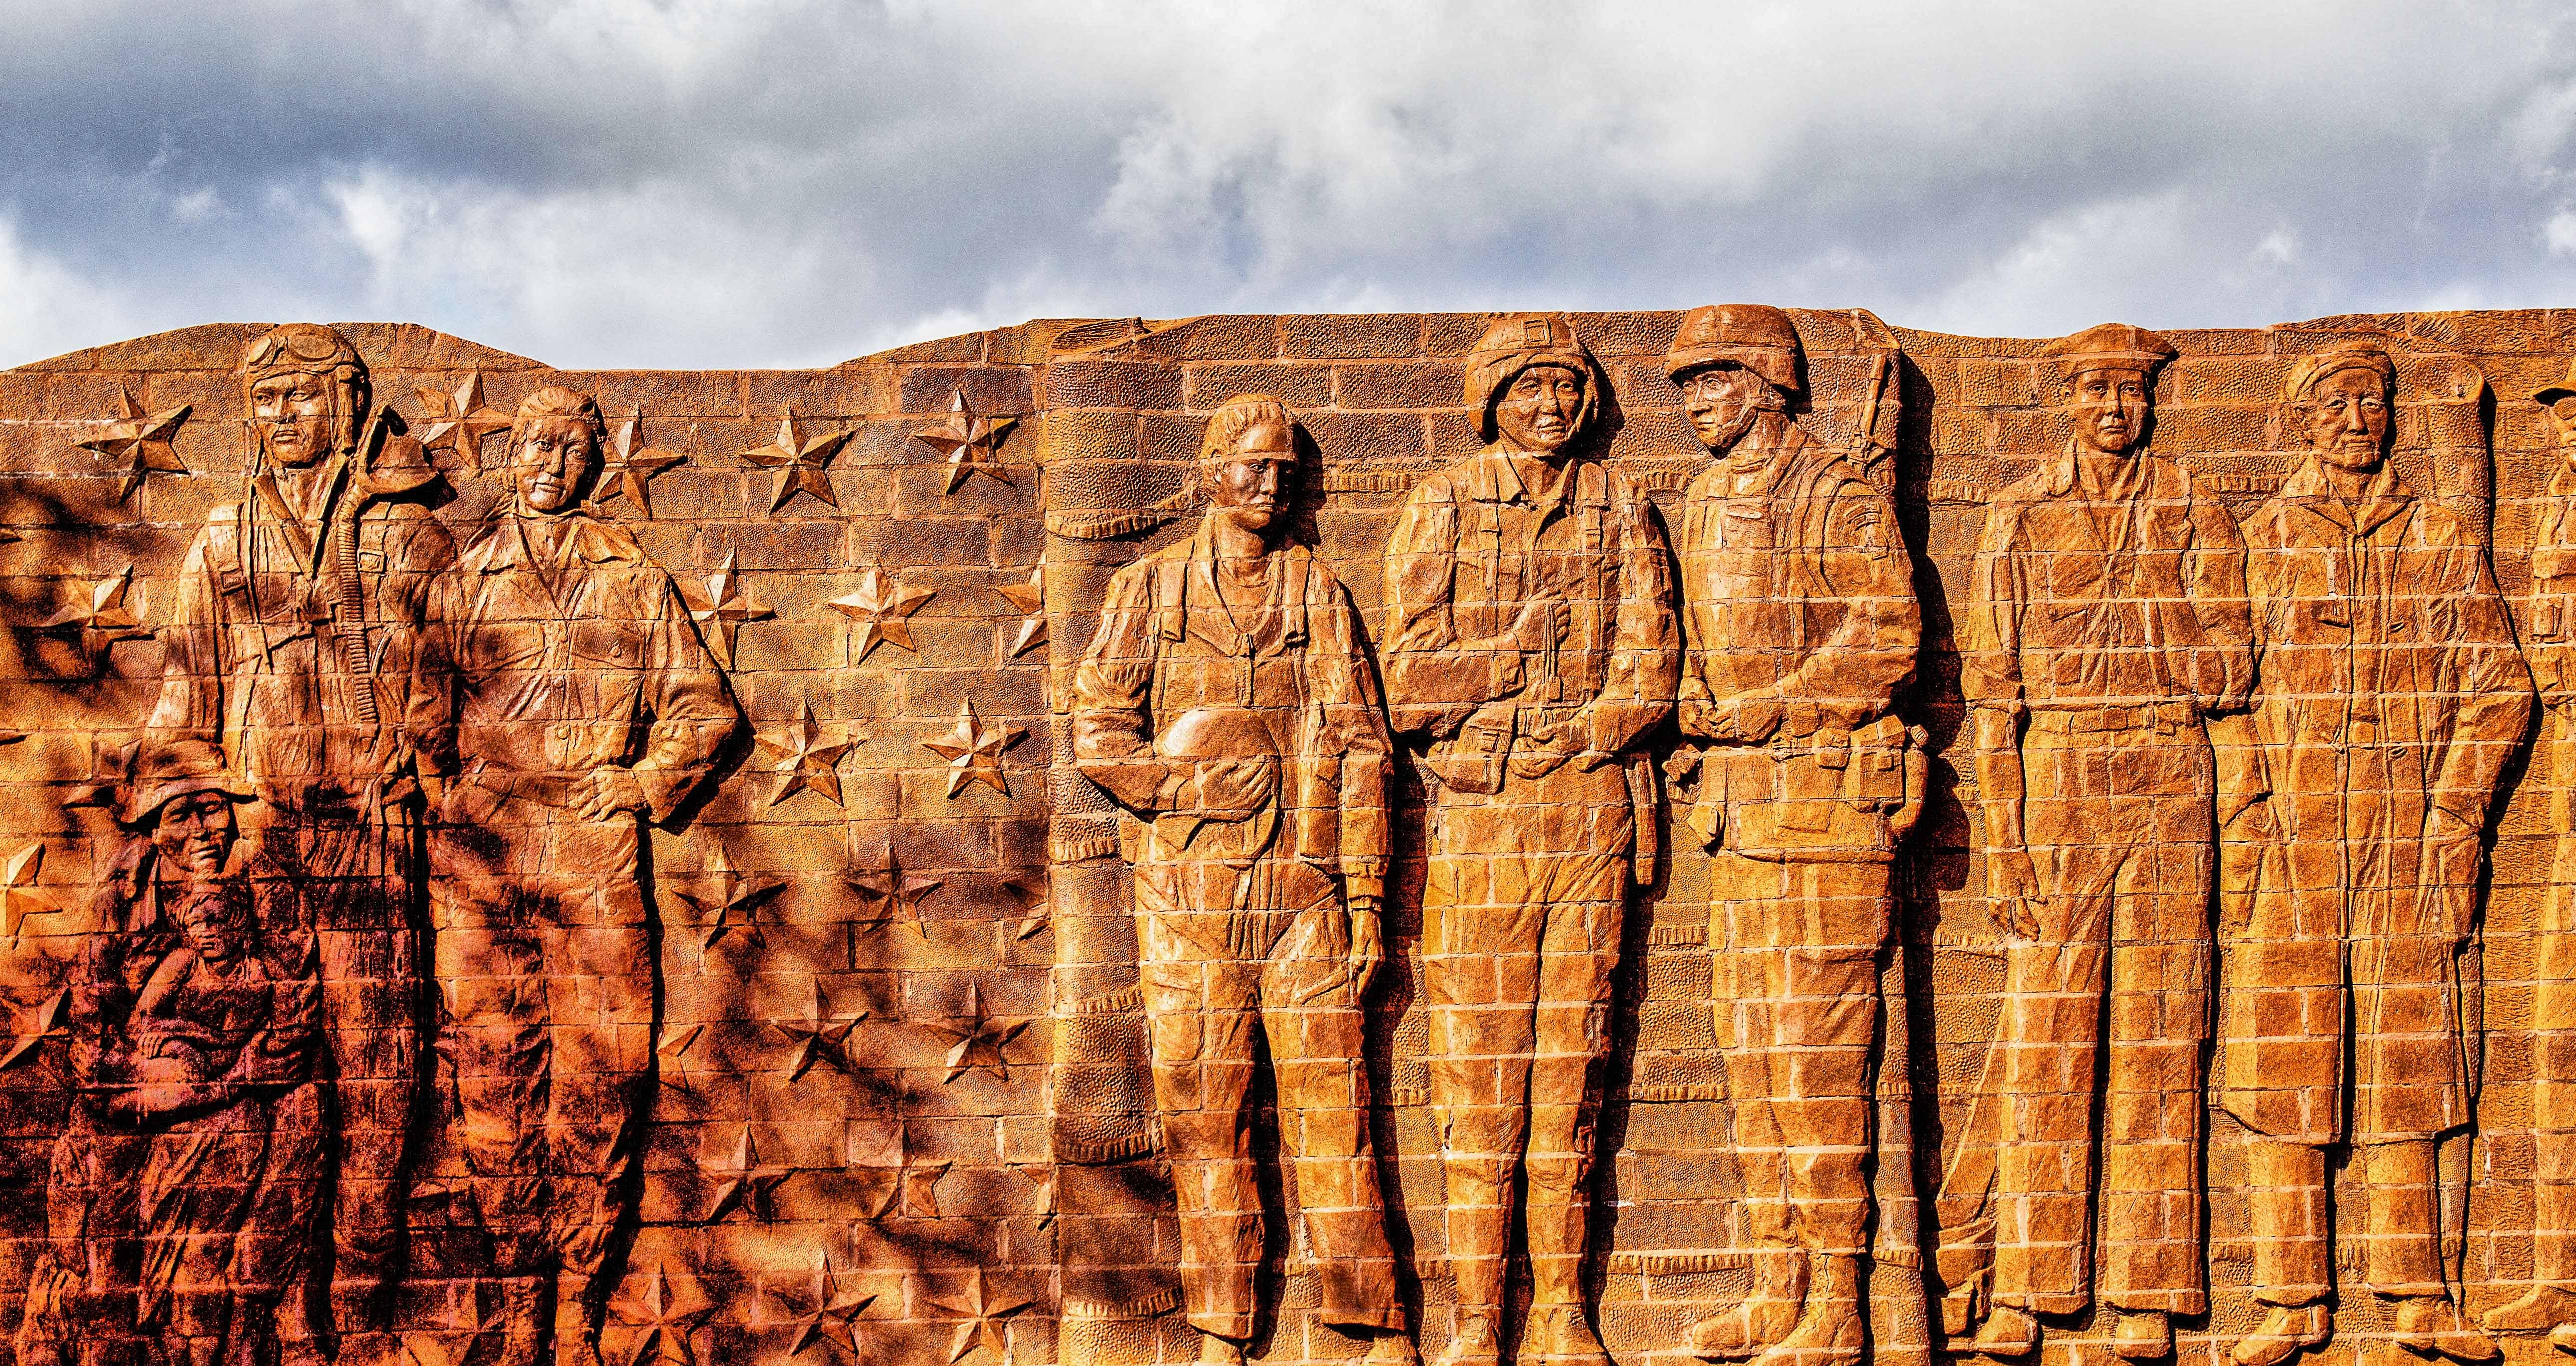 Veterans Memorial at Liberty Park, North Richland Hills, TX in bas relief.